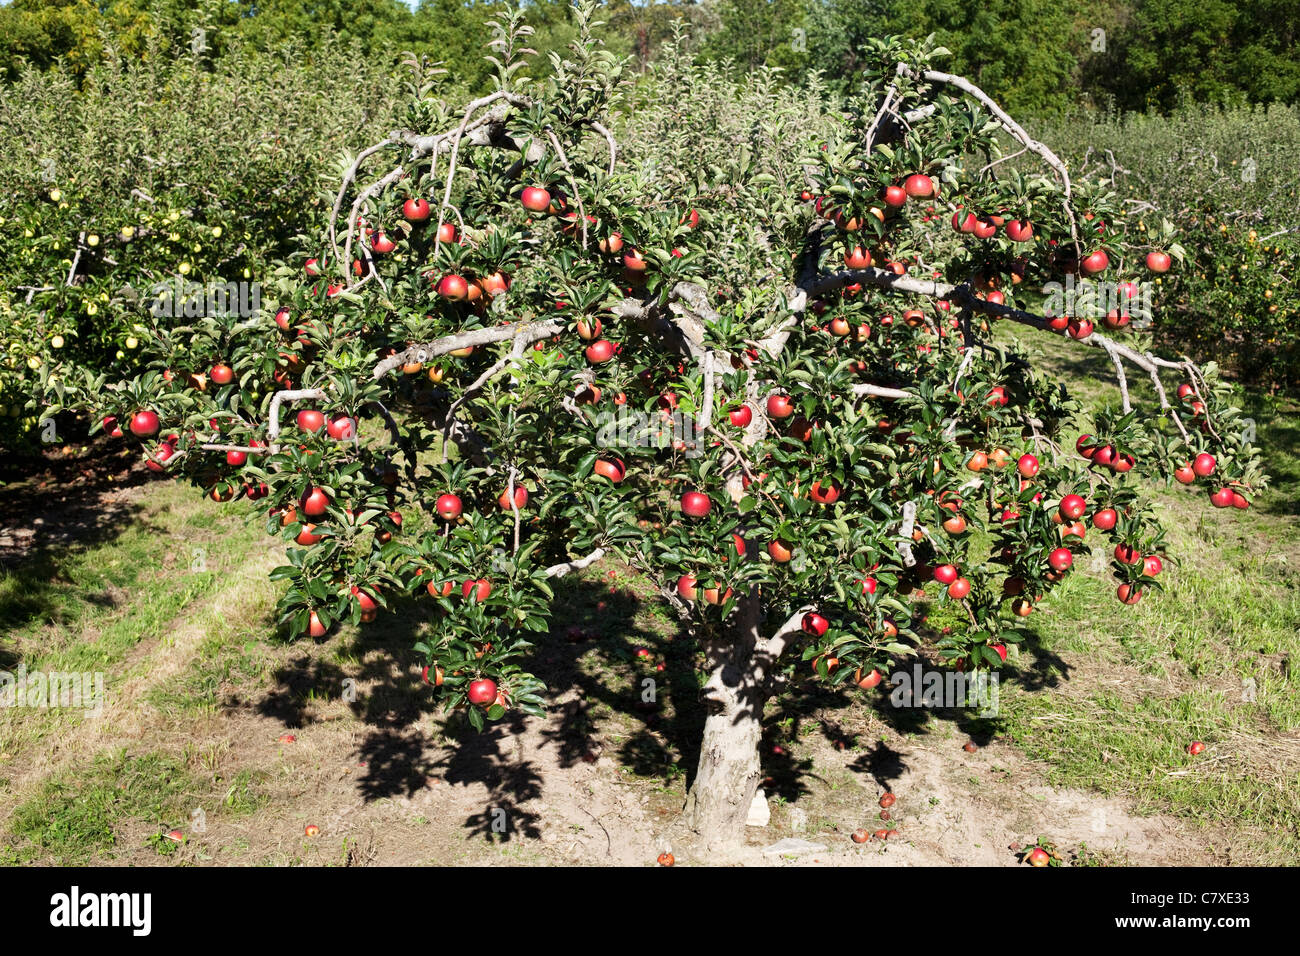 Canada,Ontario, Vineland, apple tree in orchard with ripe apples - Stock Image